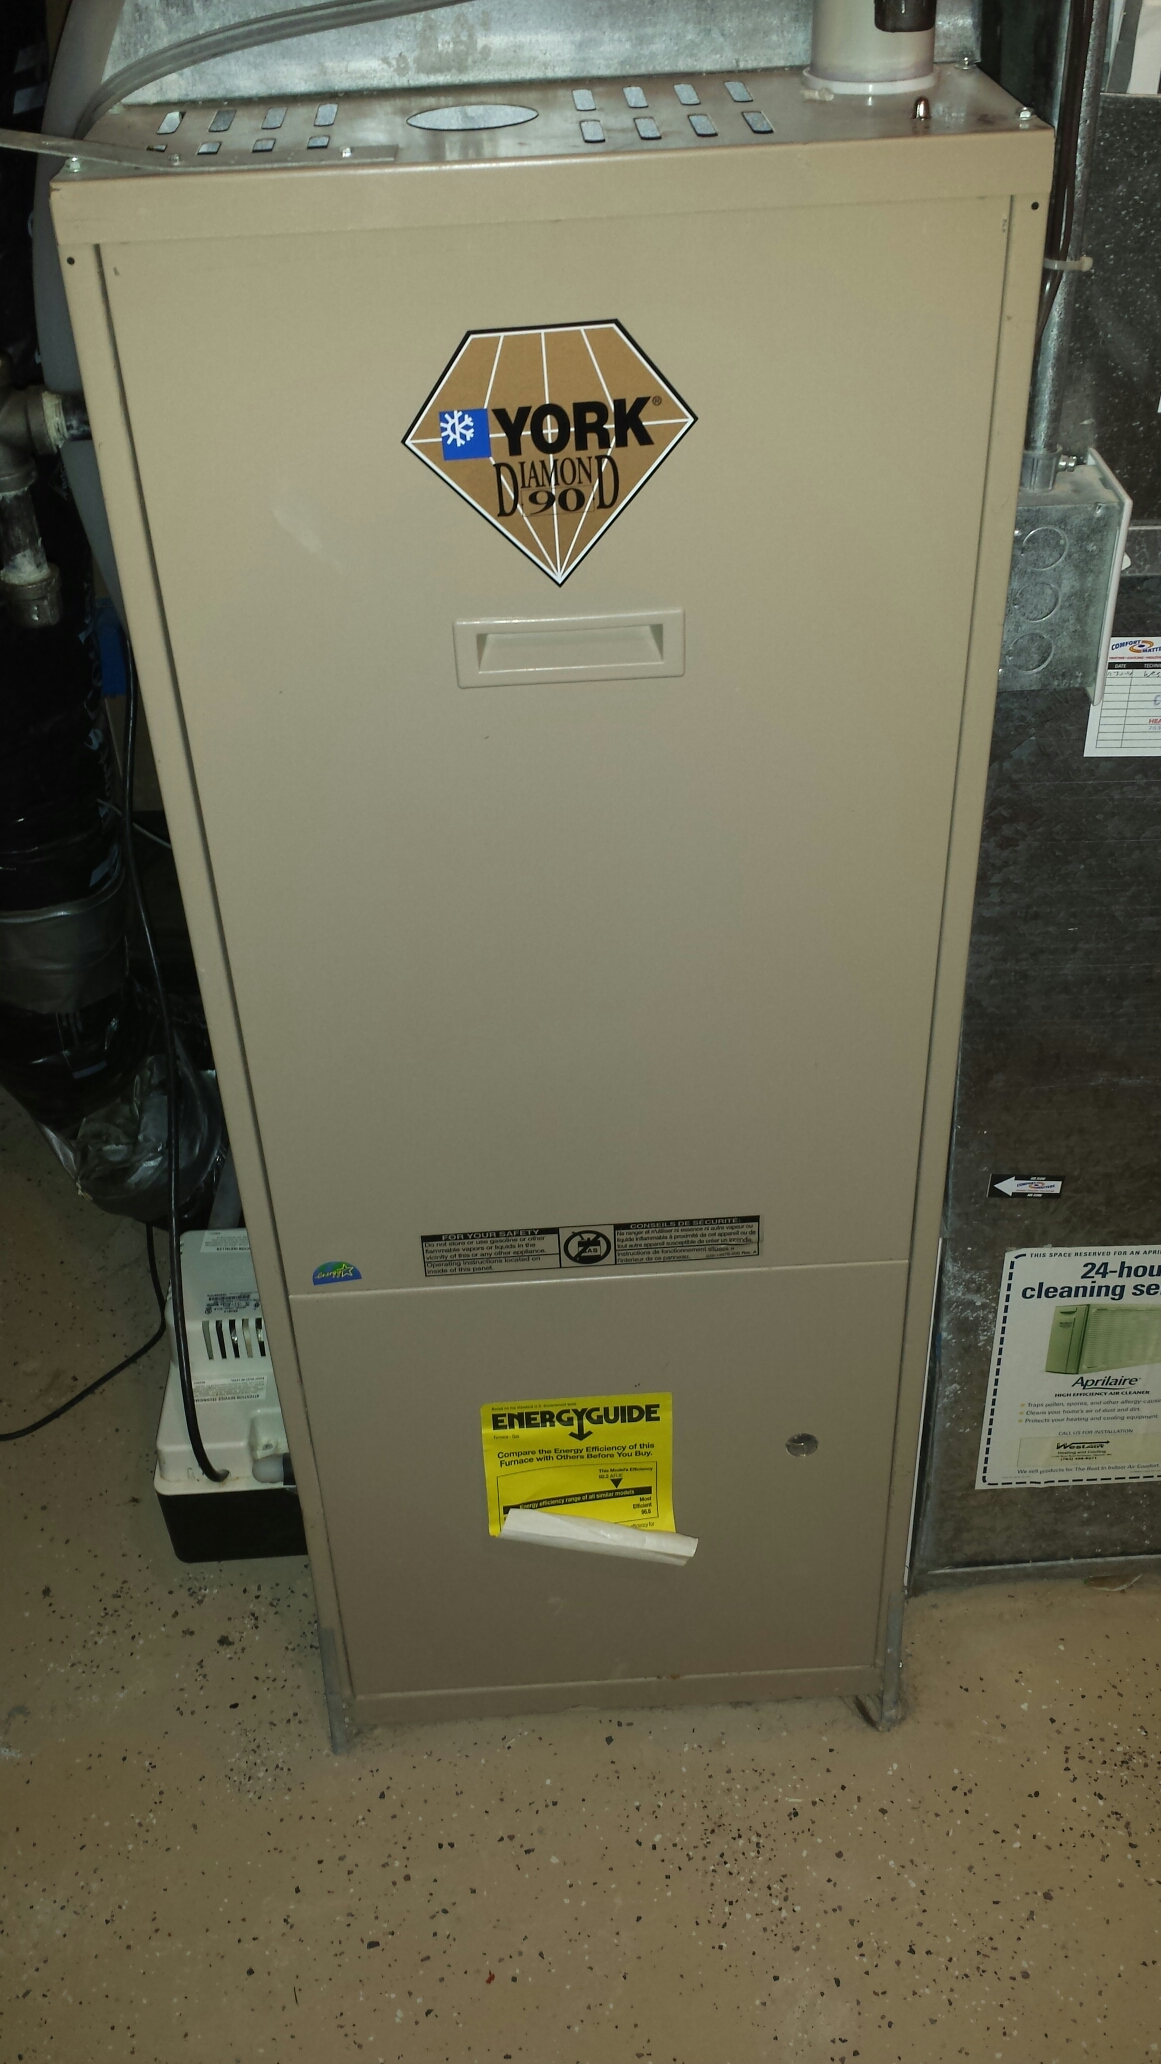 Montrose, MN - Furnace service. Replaced a flame sensor, igniter, and control board on a York furnace.